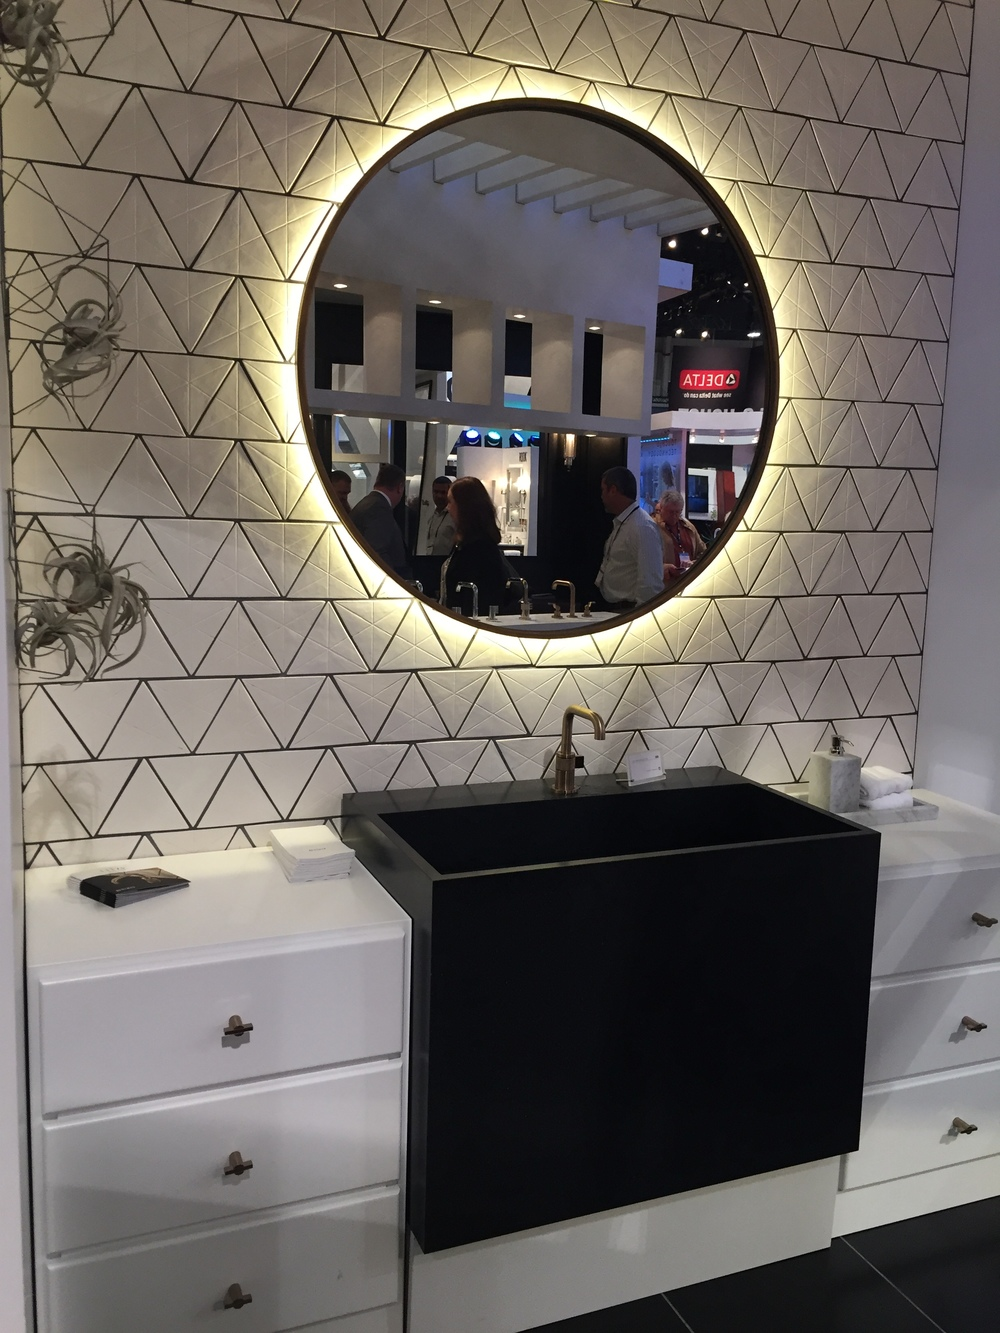 Lighted Mirror and Bath, KBIS 2016